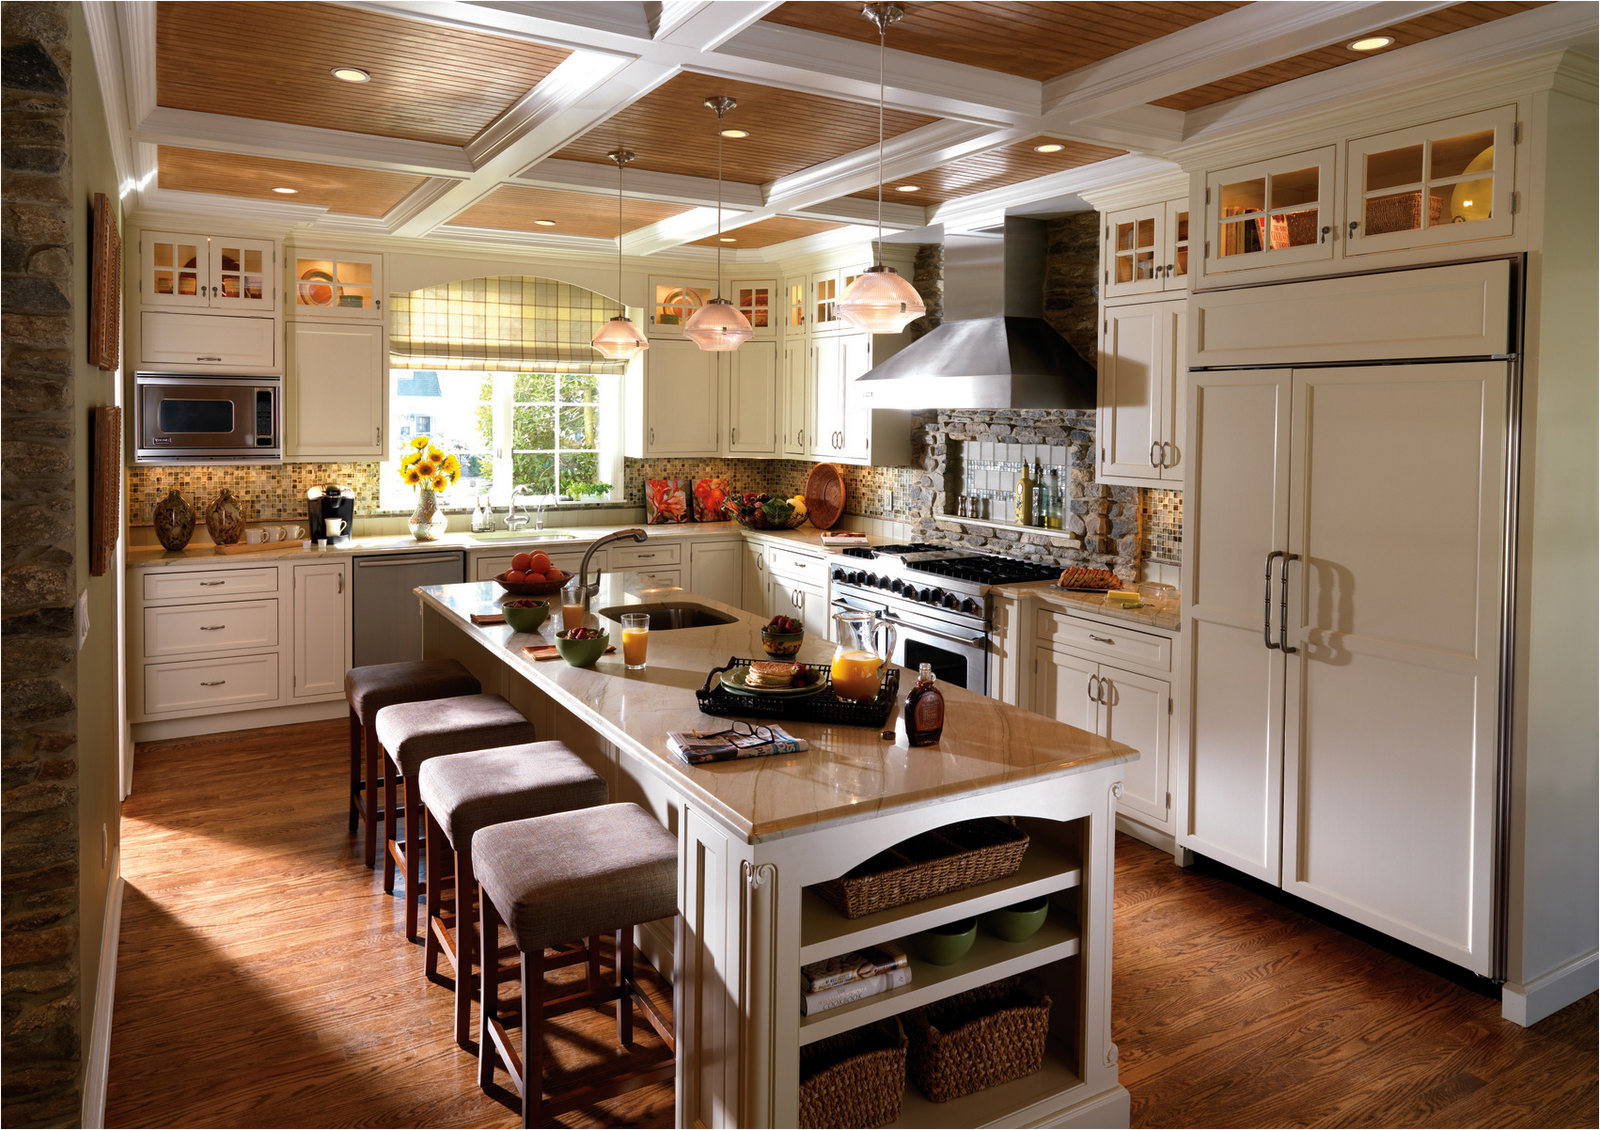 Exceptional Arts And Crafts Kitchen Design Ideas Part - 2: Arts And Crafts Kitchen Design Ideas